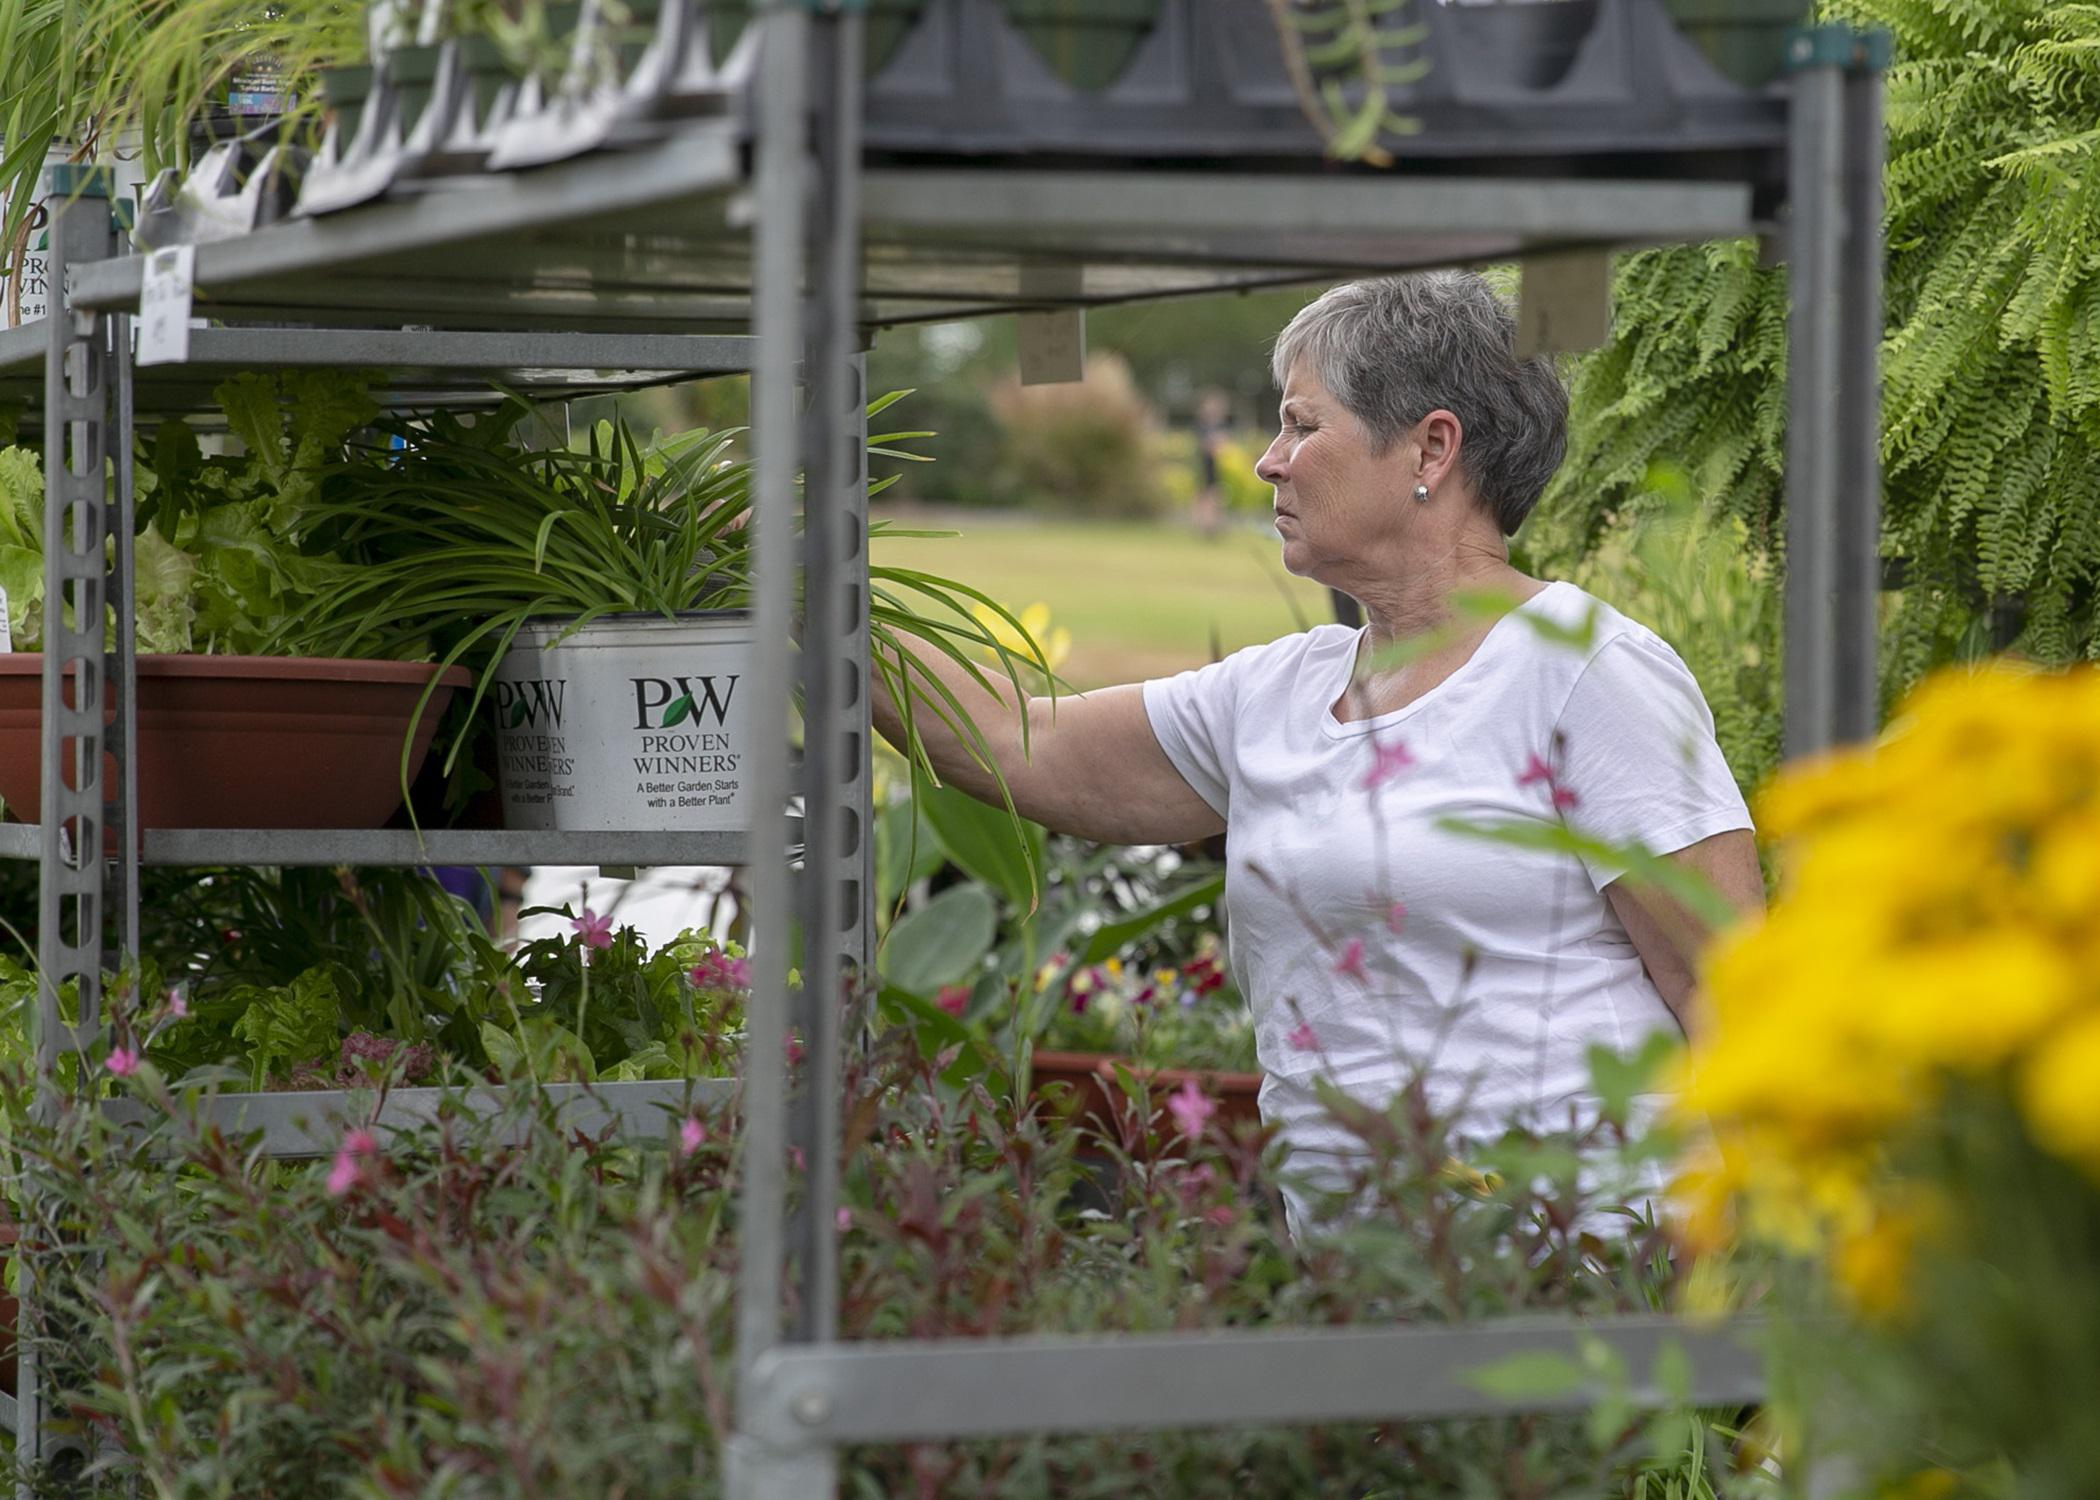 A woman reaches for a plant on an outdoor shelving unit.